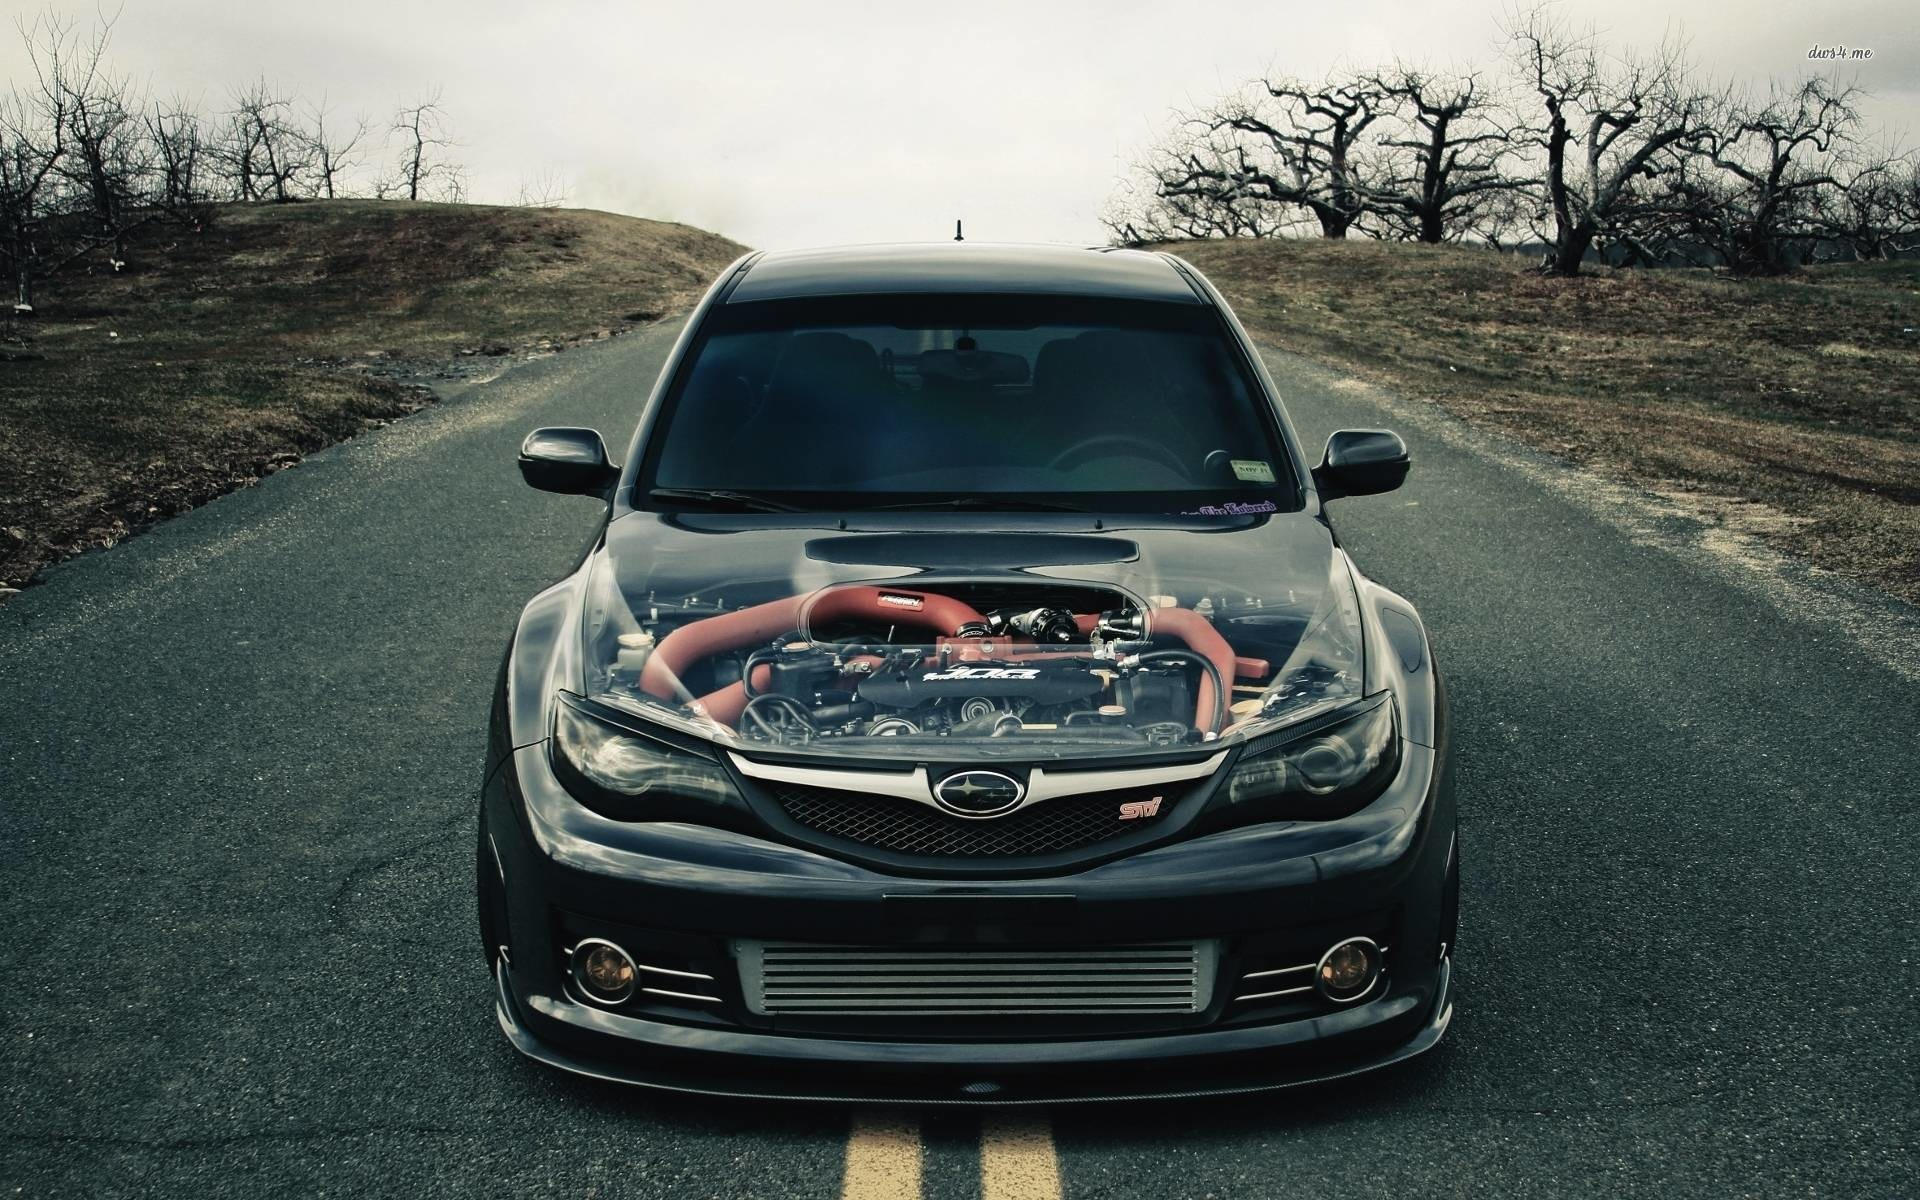 Subaru Impreza WRX STi wallpaper – Car wallpapers – #